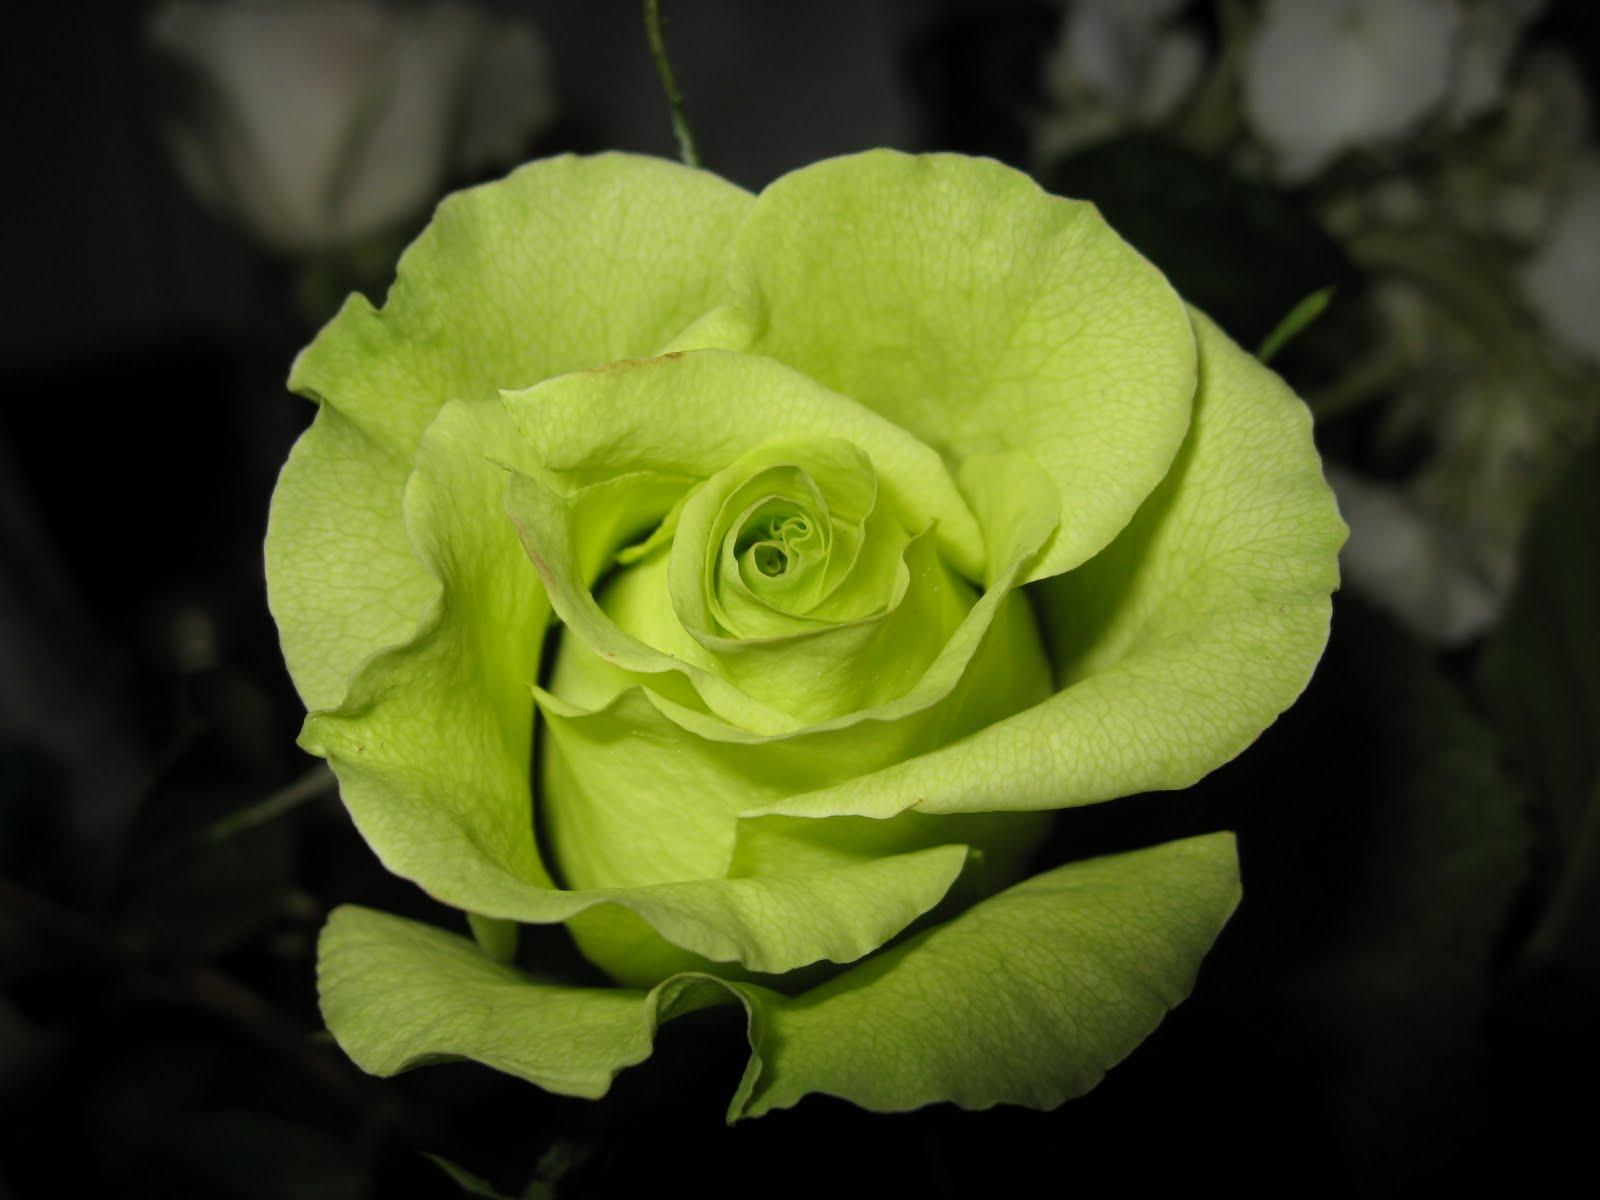 Green Rose Flowers Flower HD Wallpapers PIctures Tattoos and Desk